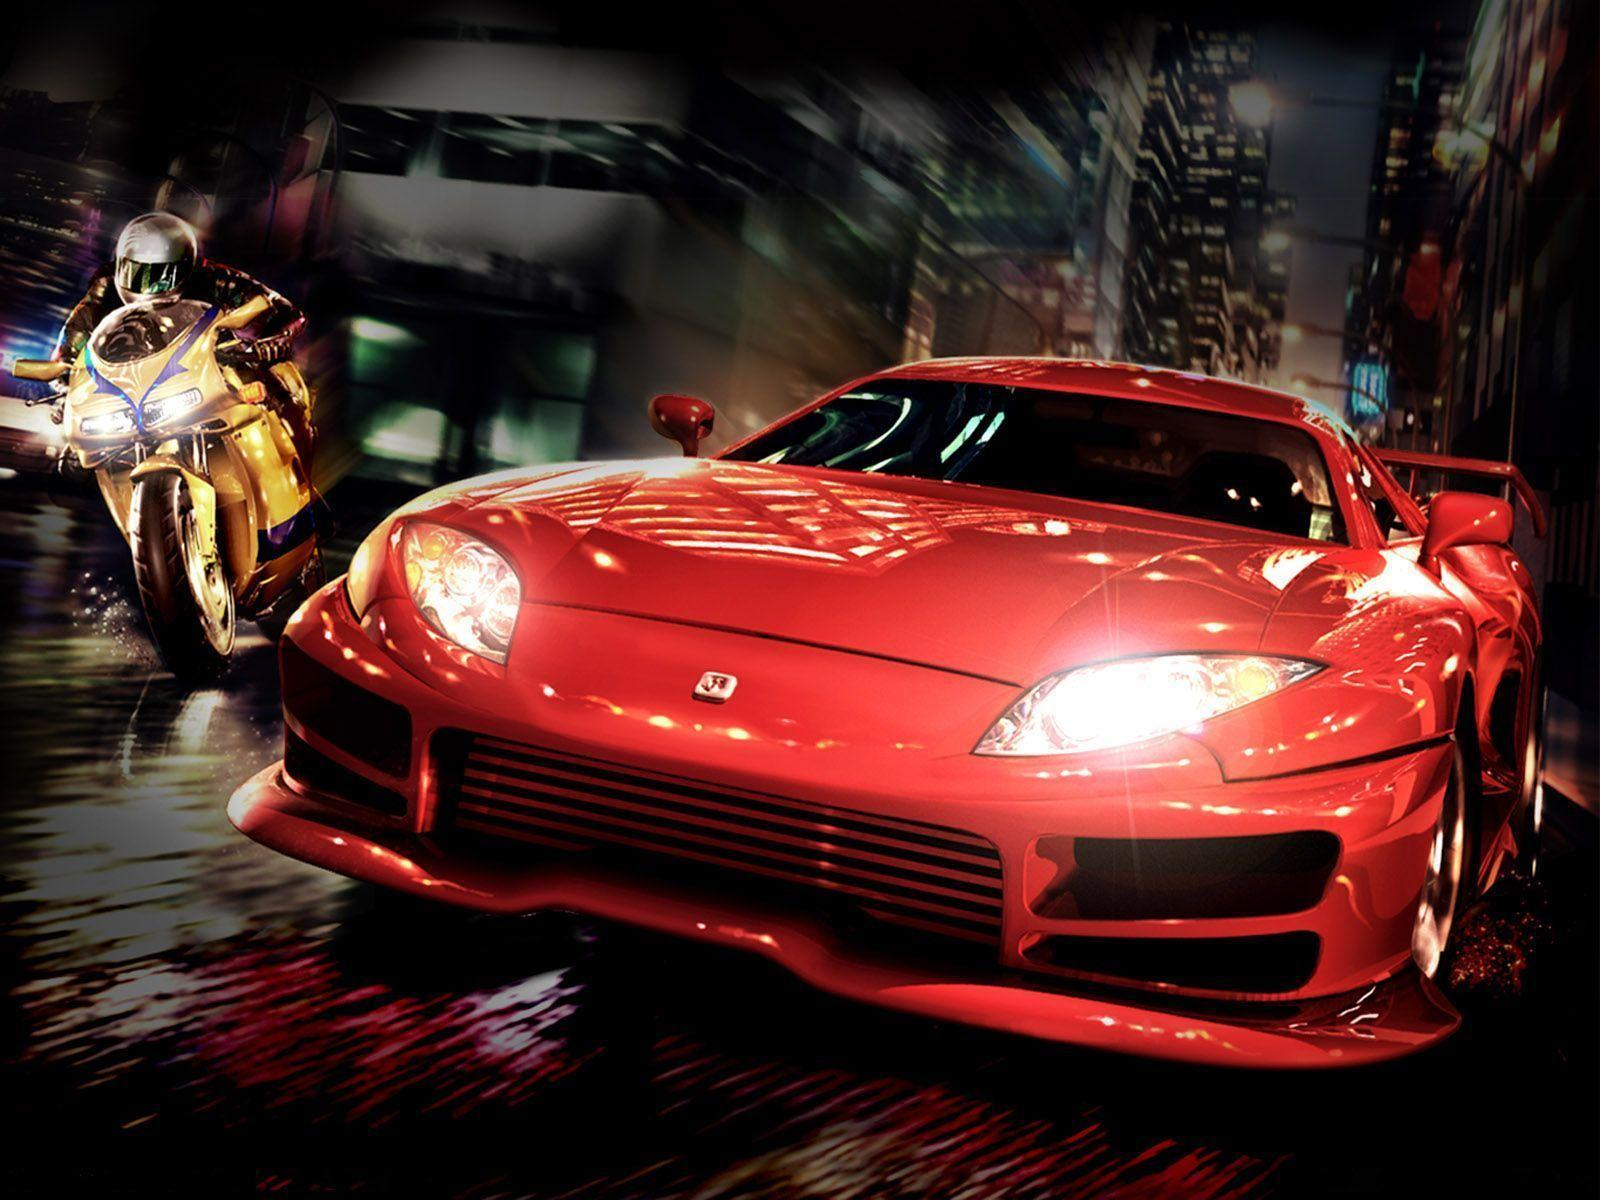 Wallpapers Of Cars automotive, best car wallpapers, car desktop ...